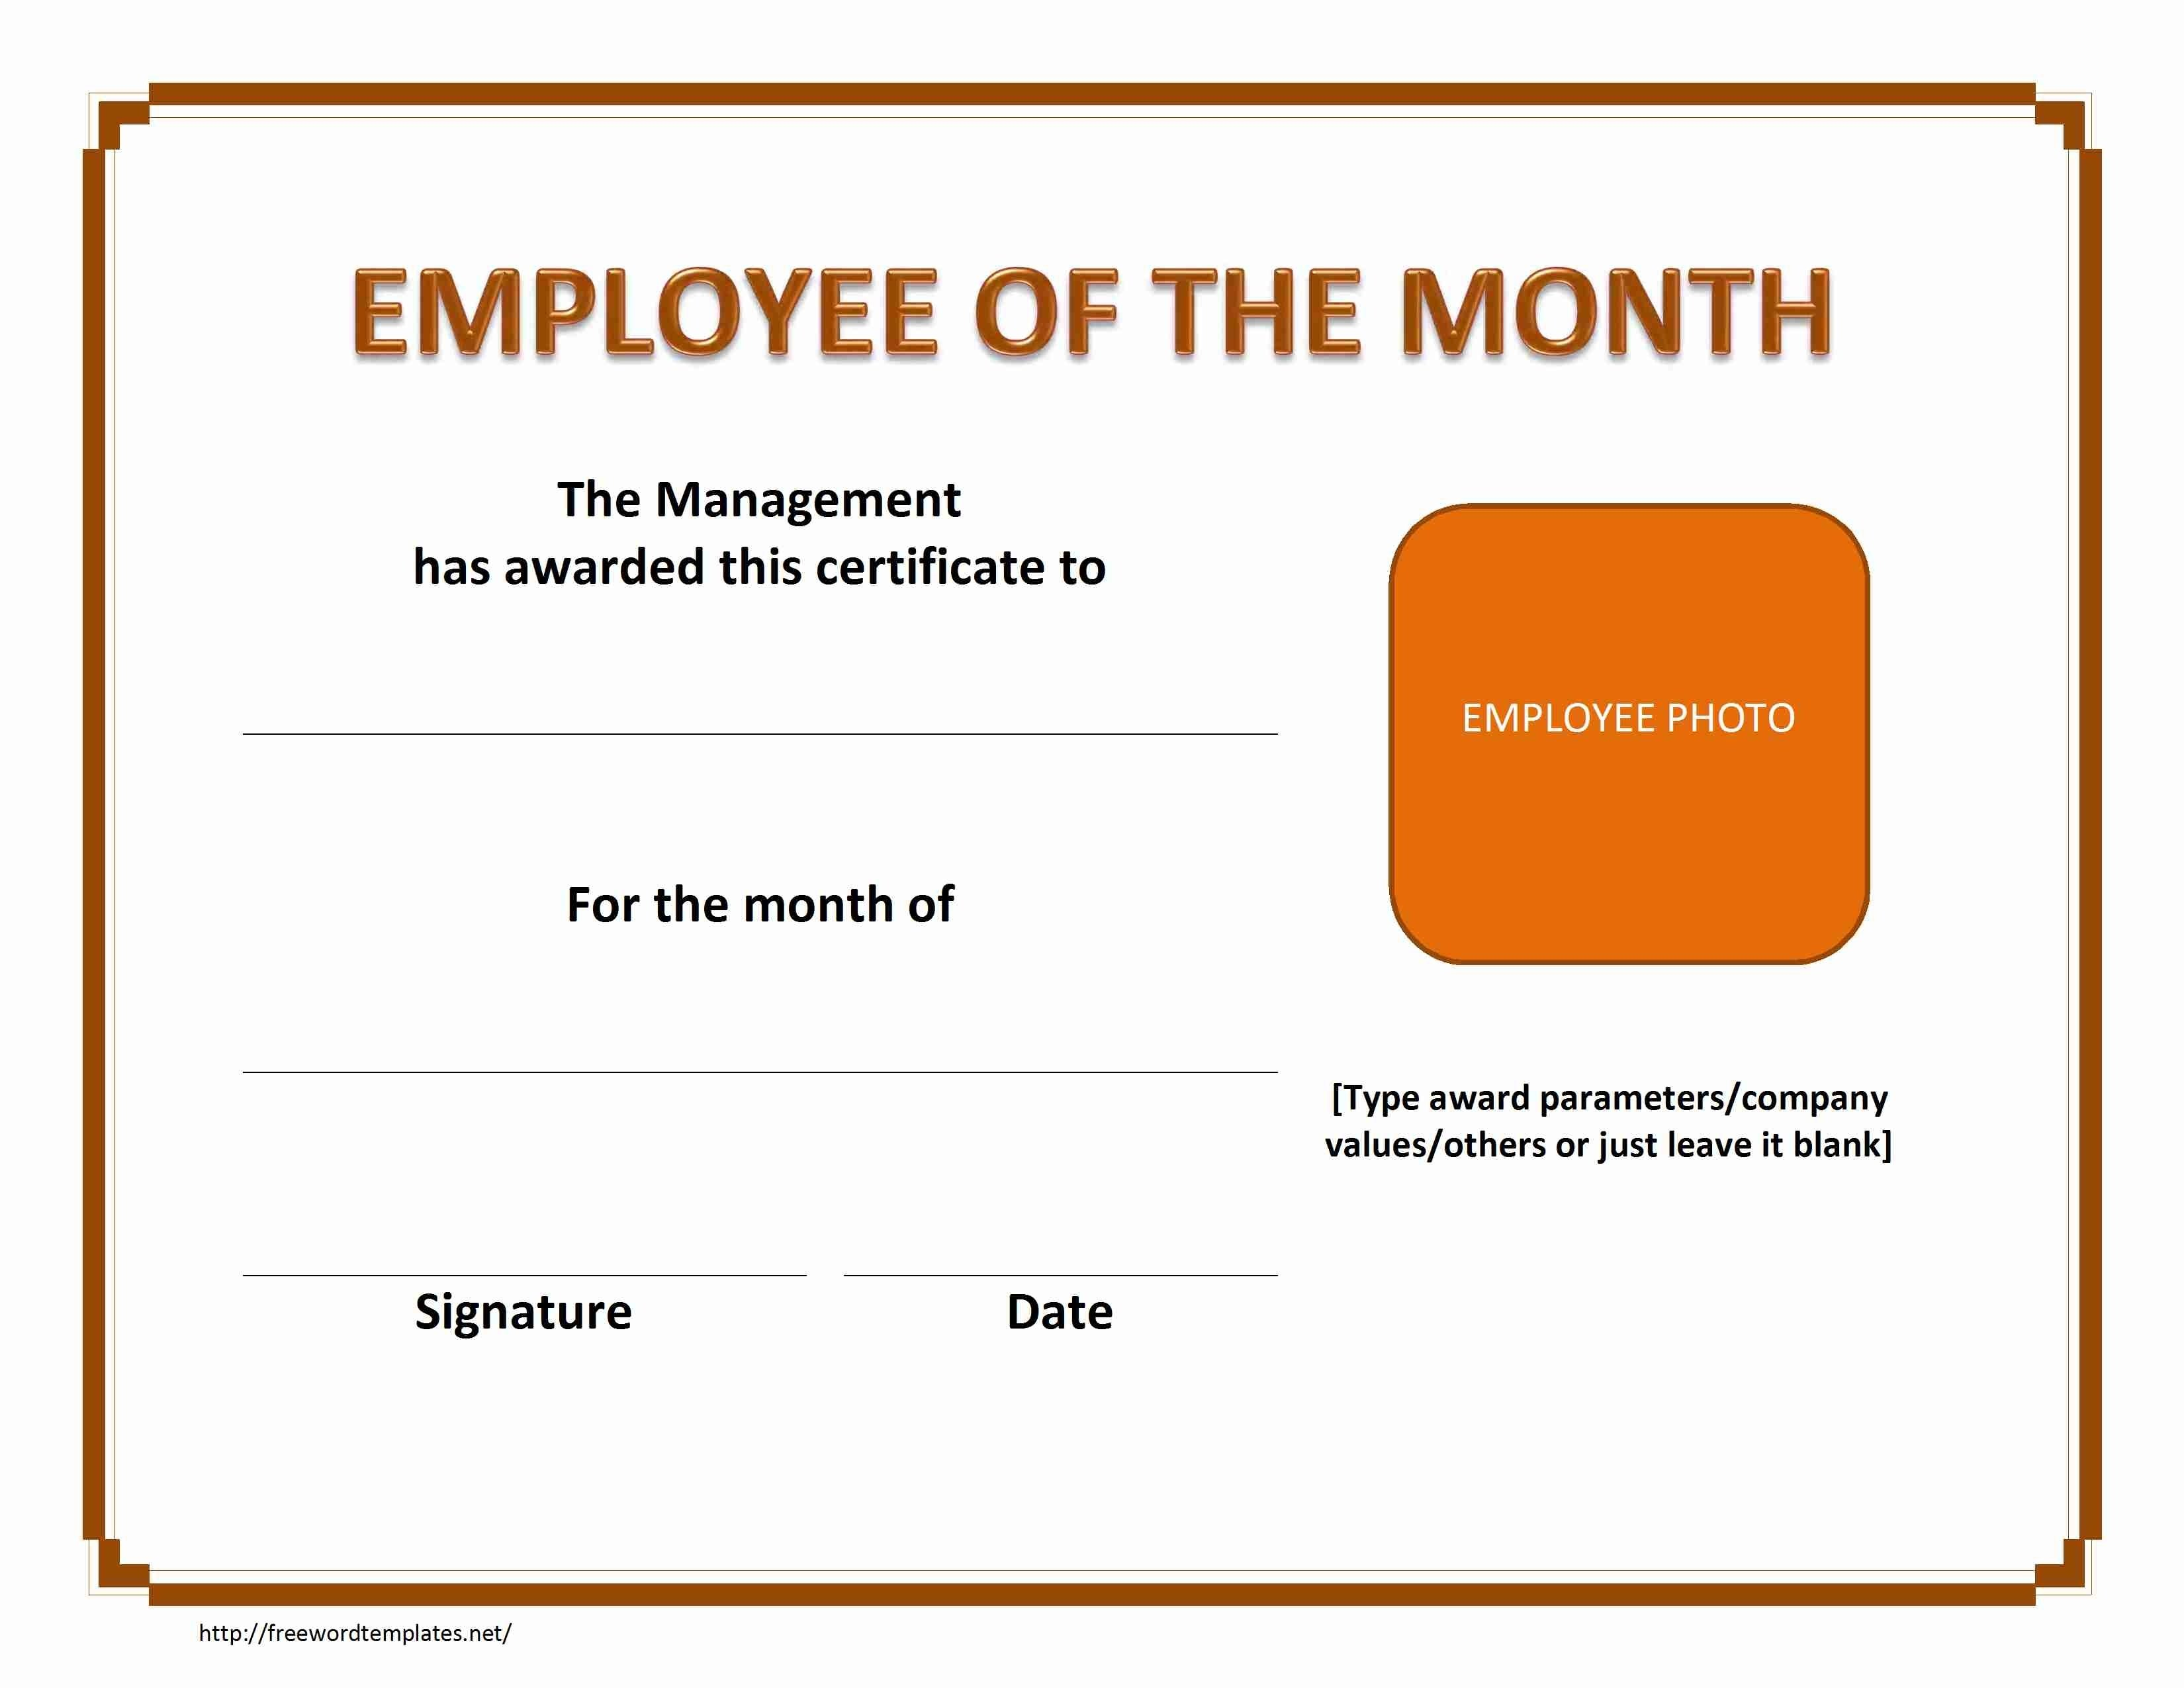 10 Awesome Employee Of The Month Ideas printable employee of the month certificate mangdienthoai